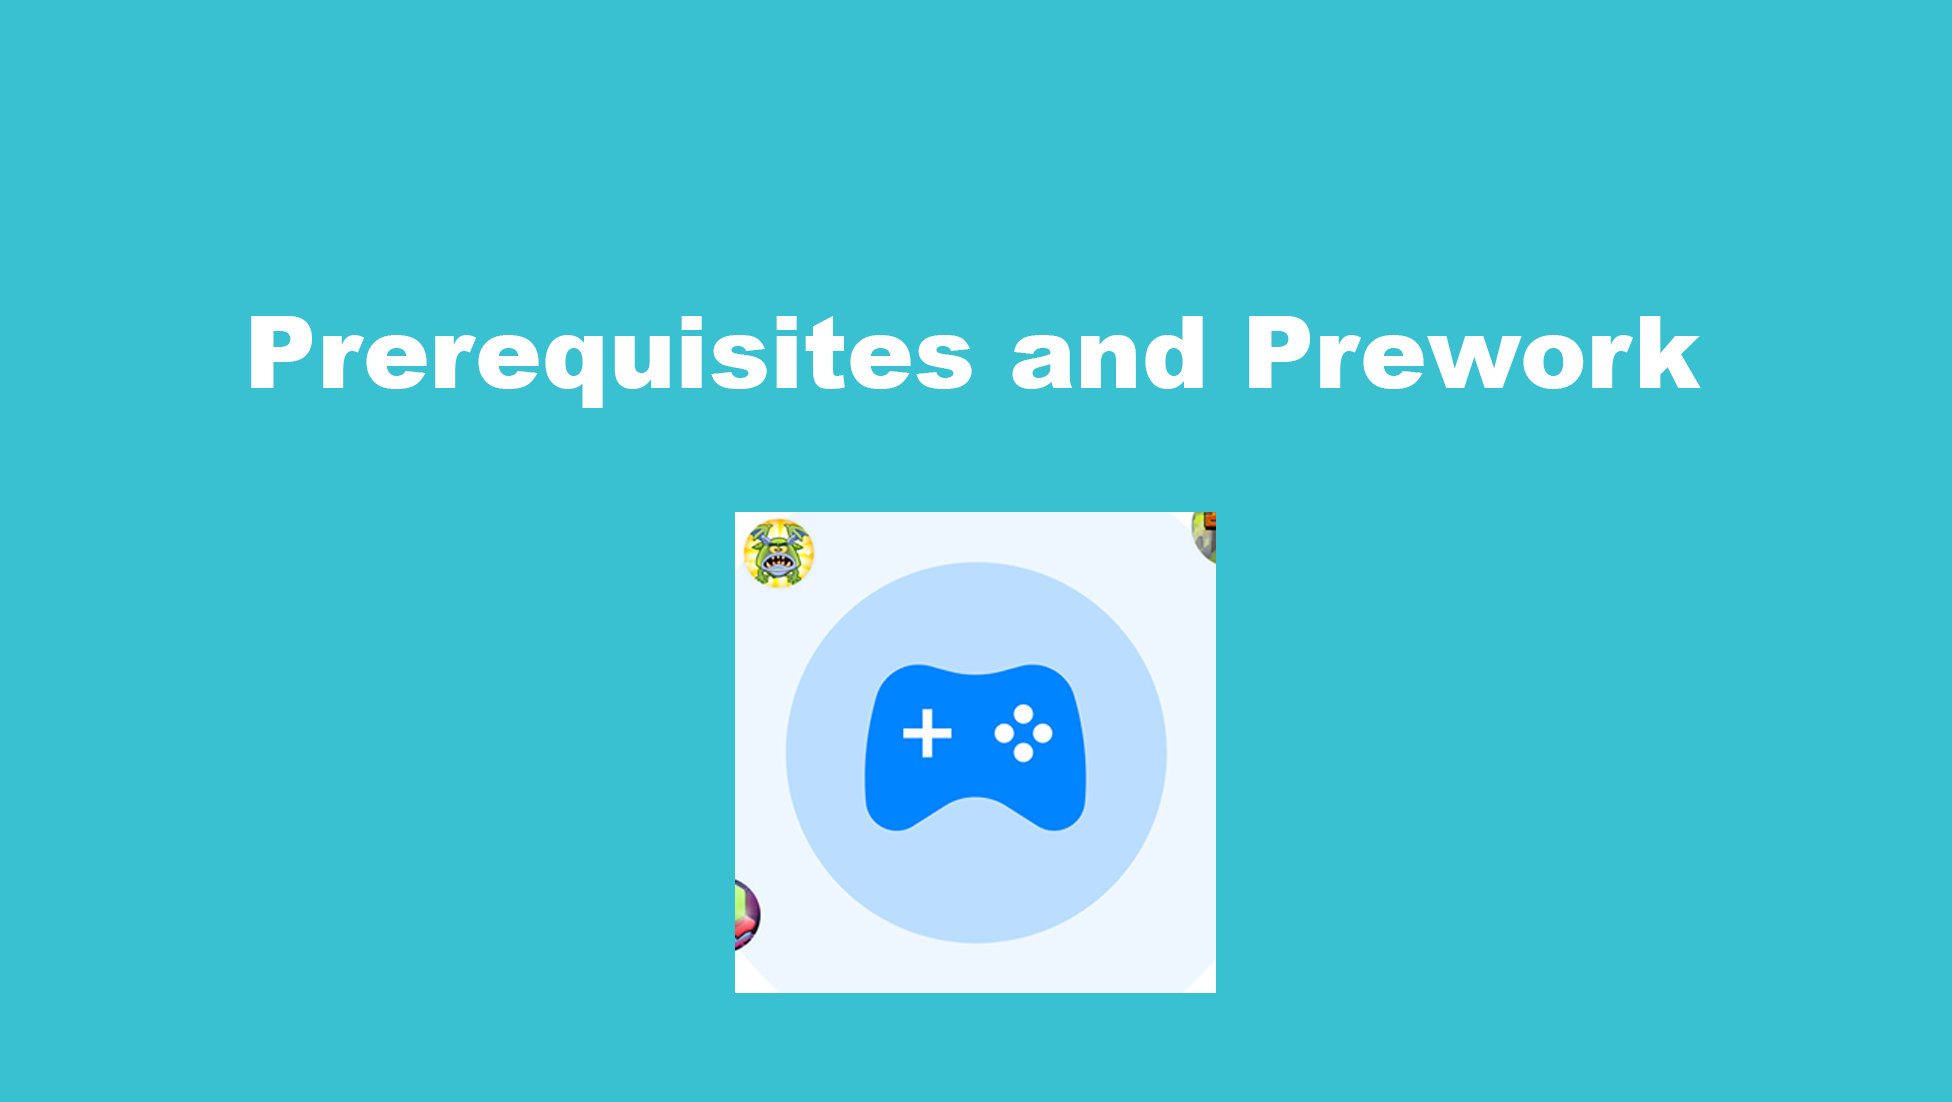 Prerequisites and Prework - Facebook Instant Game 1